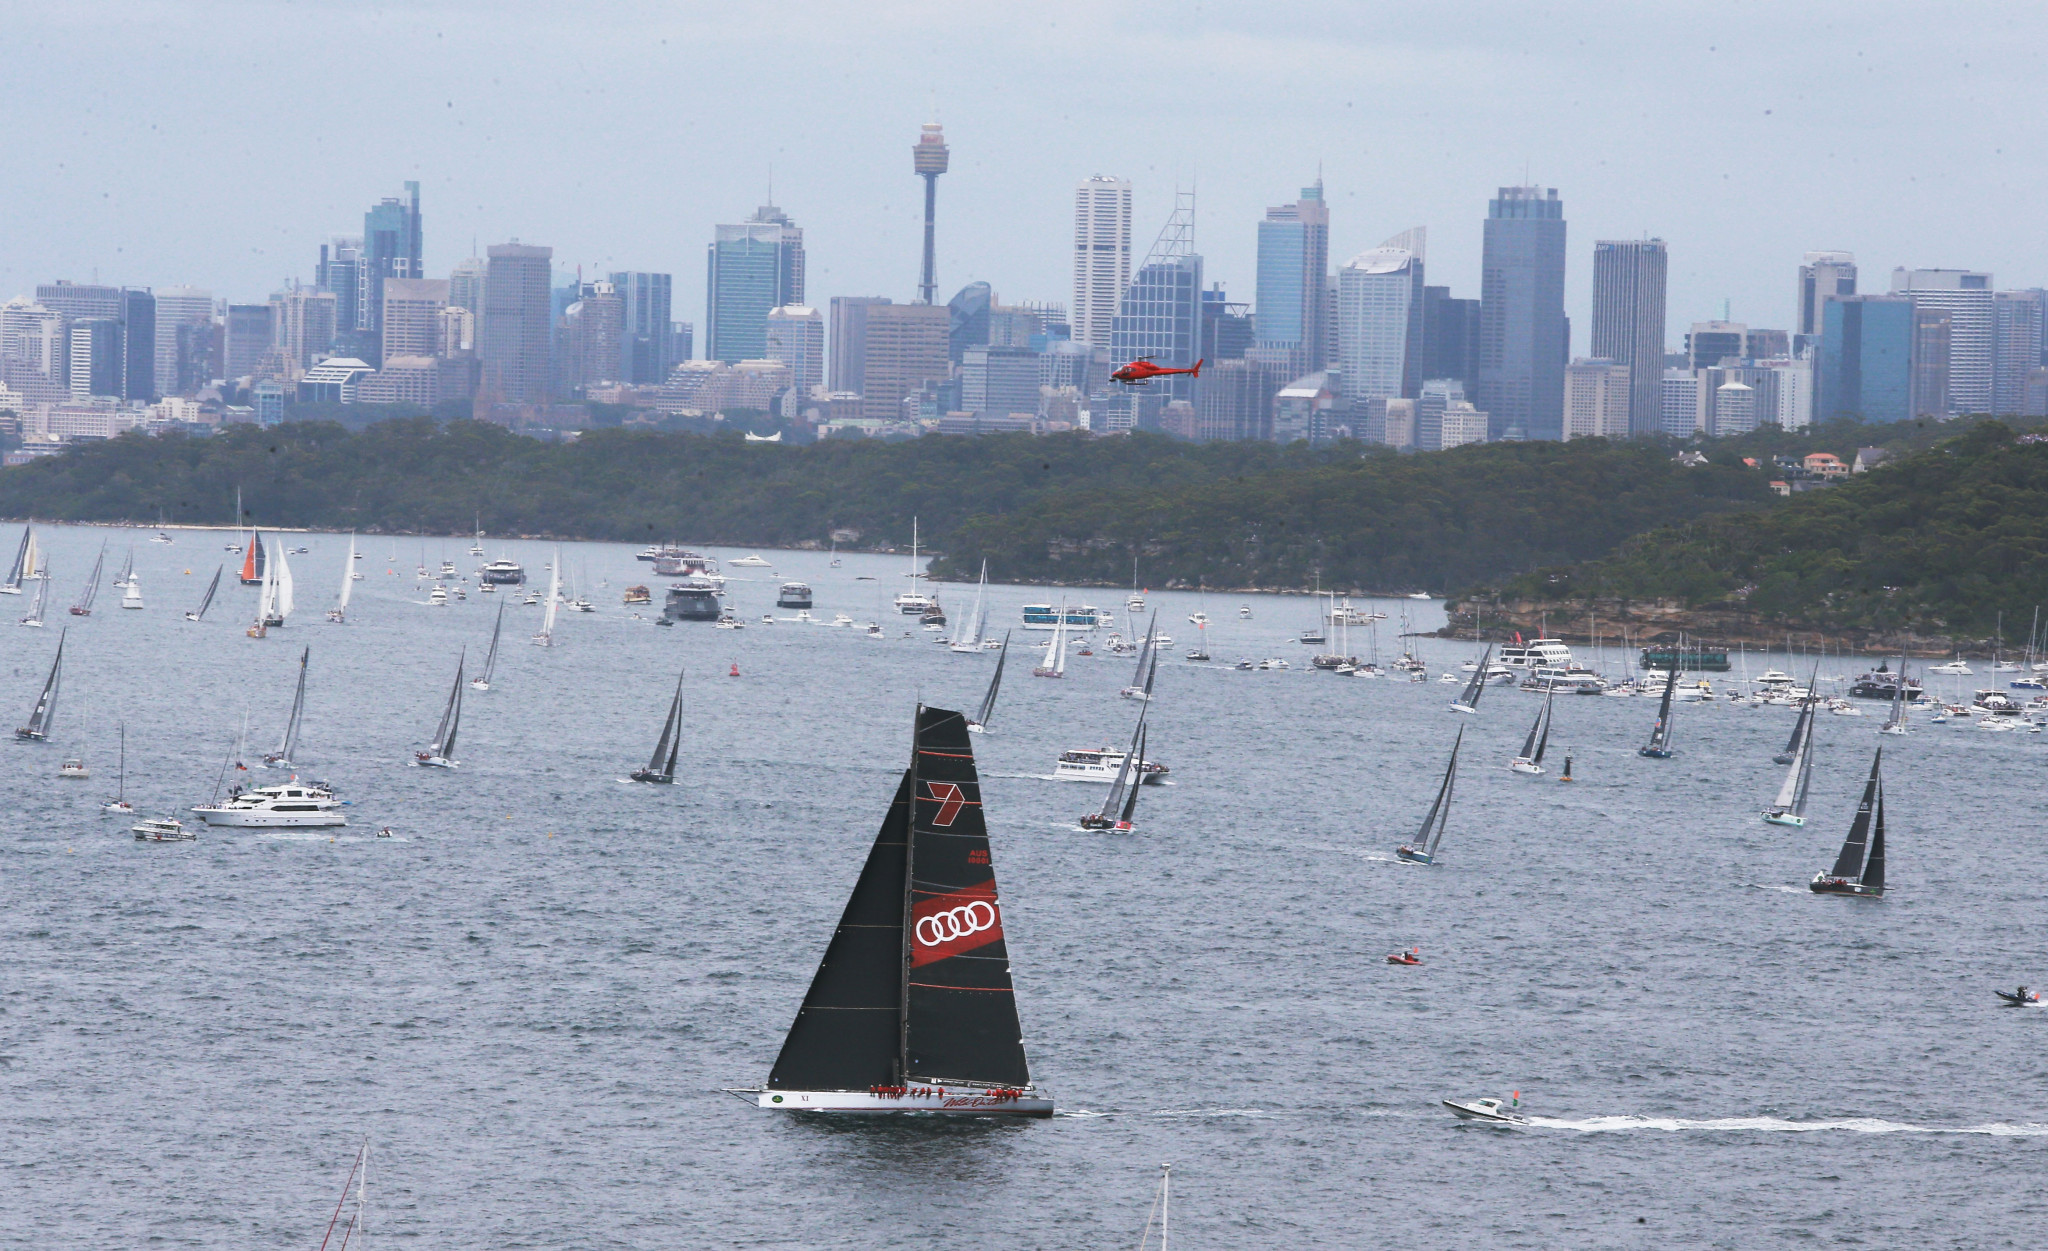 Sydney Hobart Yacht Race cancelled for 2020 due to COVID-19 pandemic